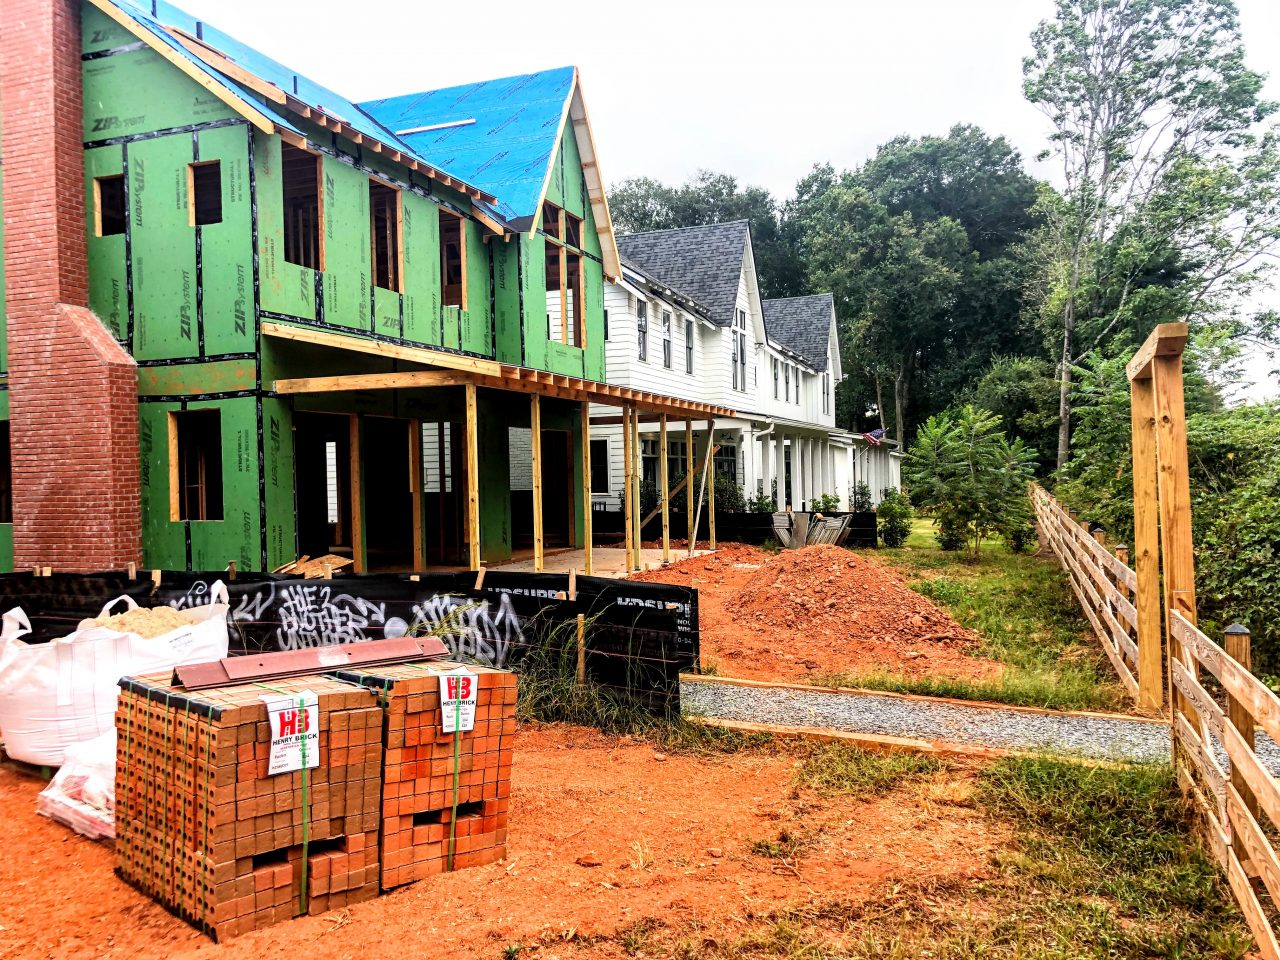 Houses are almost complete near urban trail